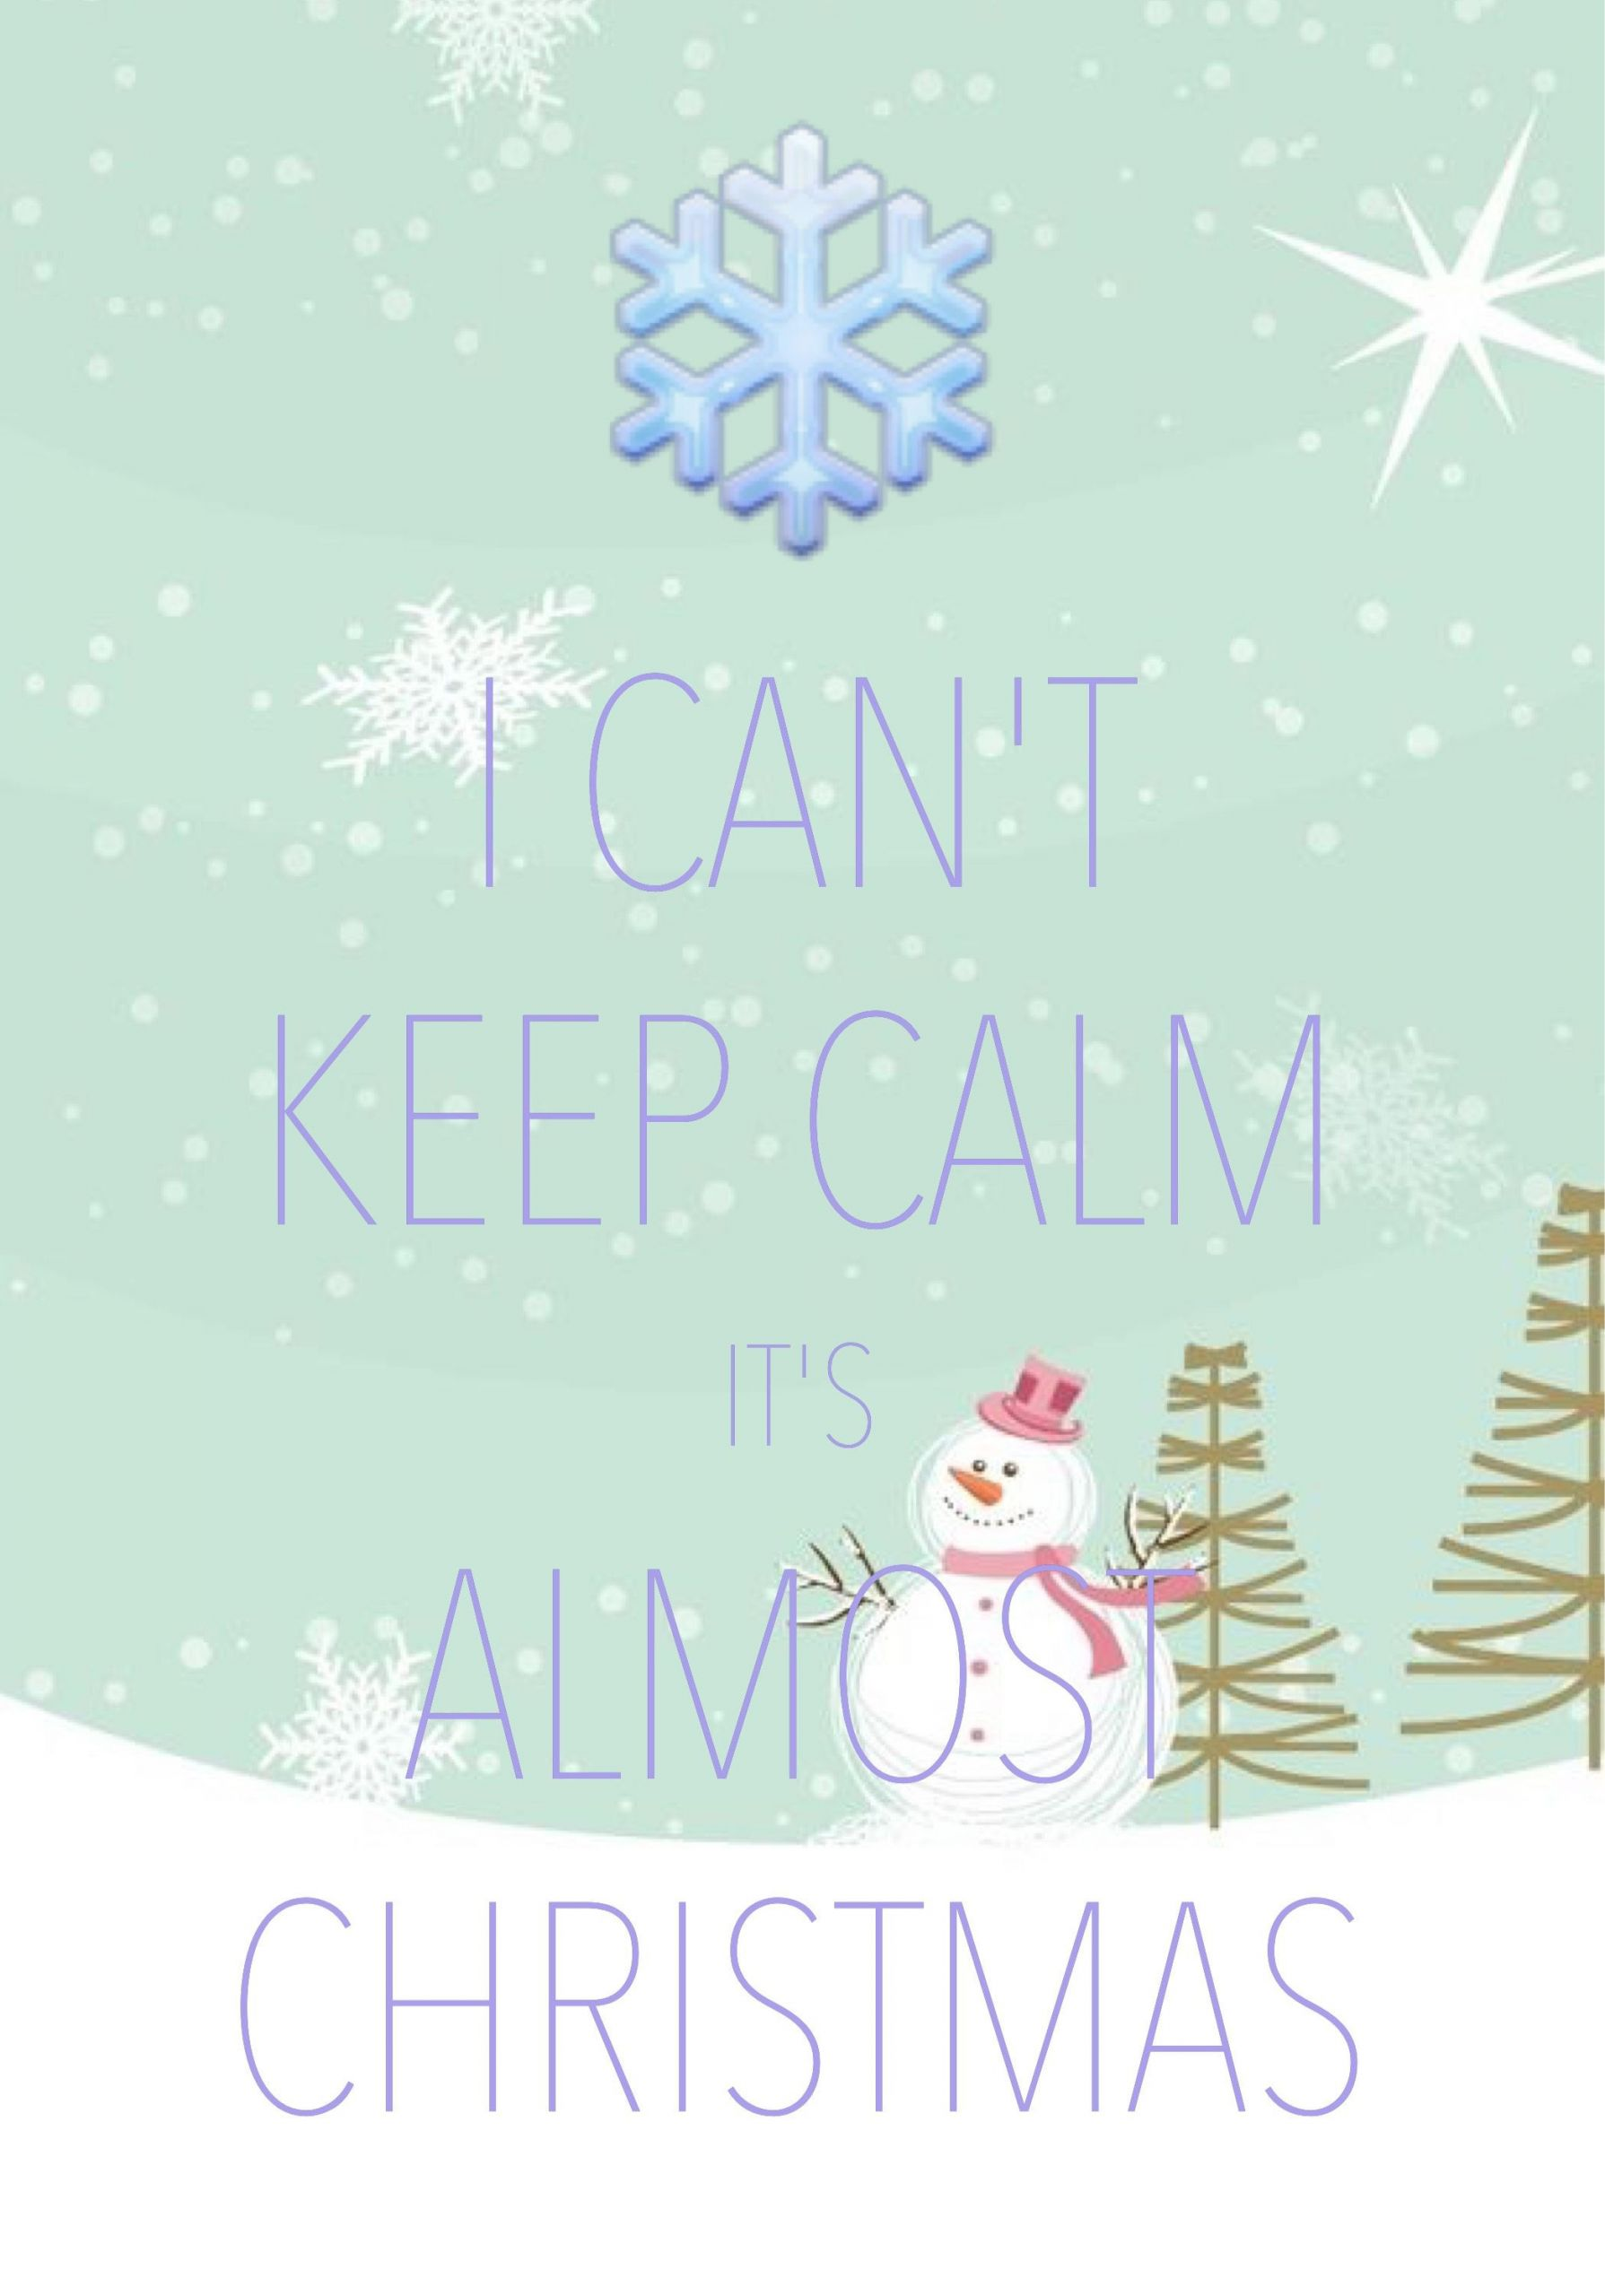 Almost Christmas Quotes  i can t keep calm it s almost Christmas created with